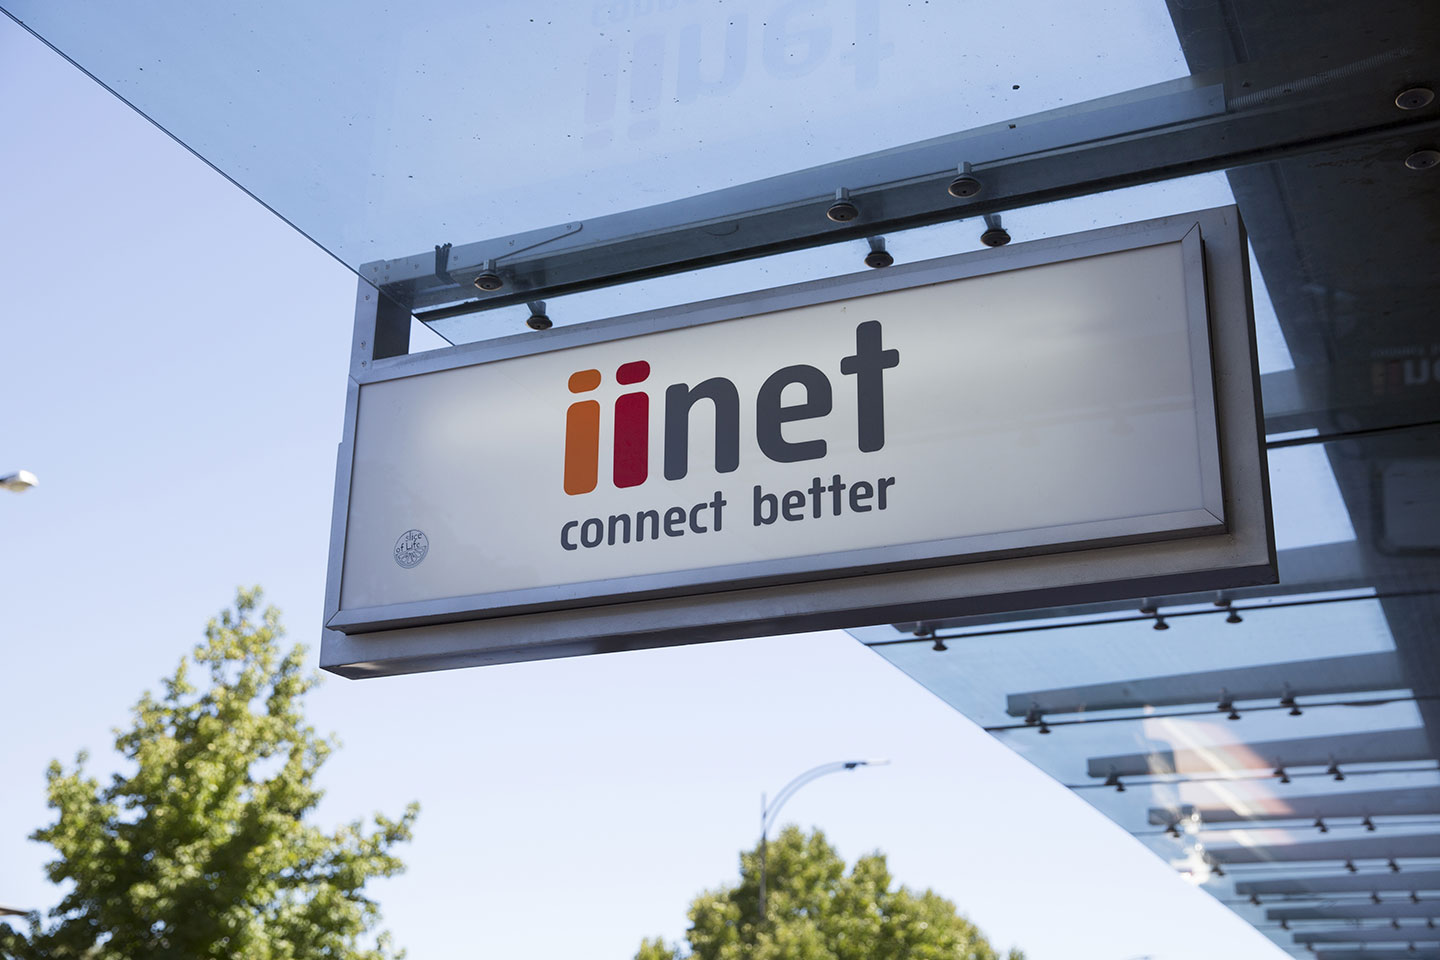 IiNet, Internode customers to be compensated over NBN speeds